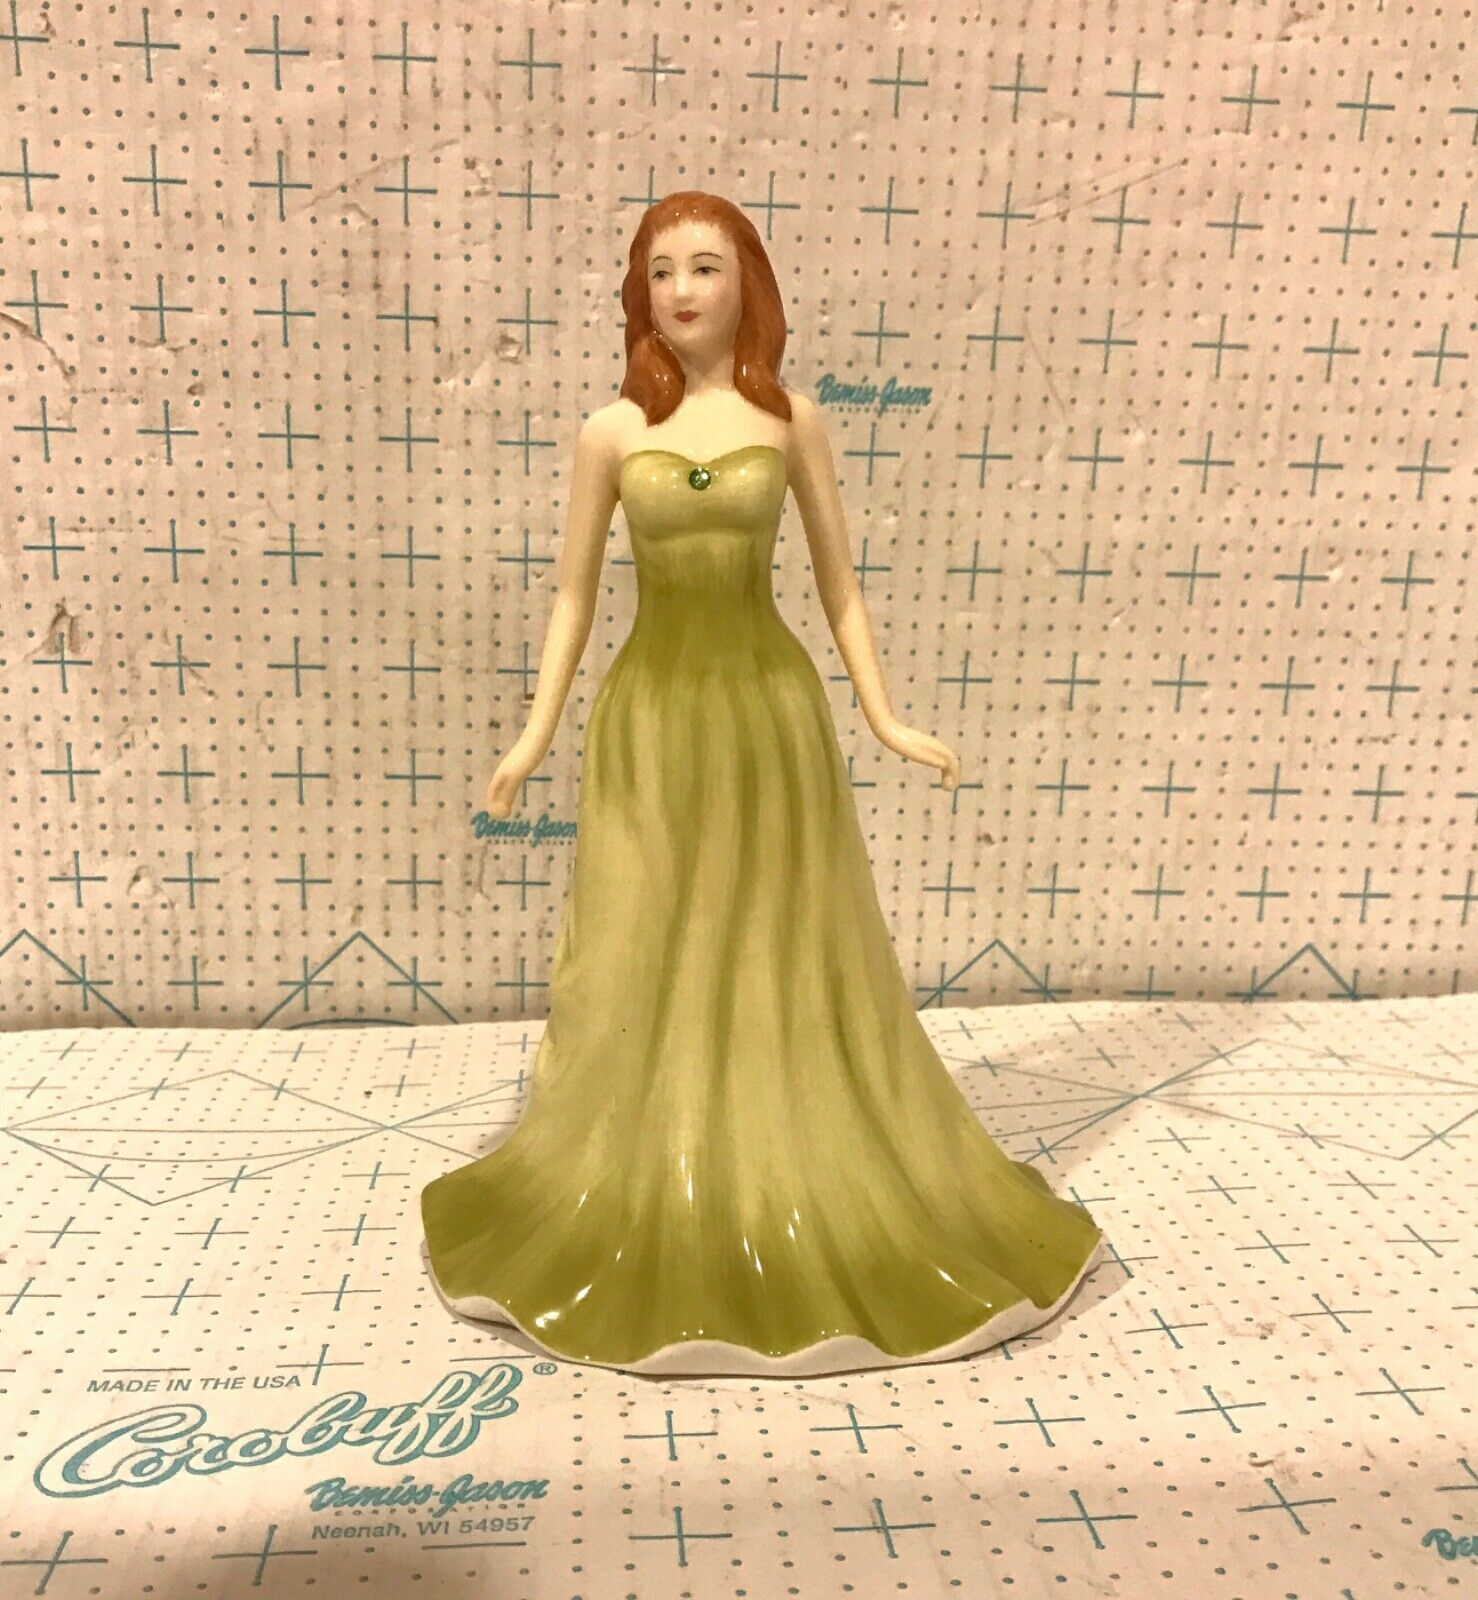 Royal Doulton Porcelain Figurine HN4977 August Peridot Gemstone Collection